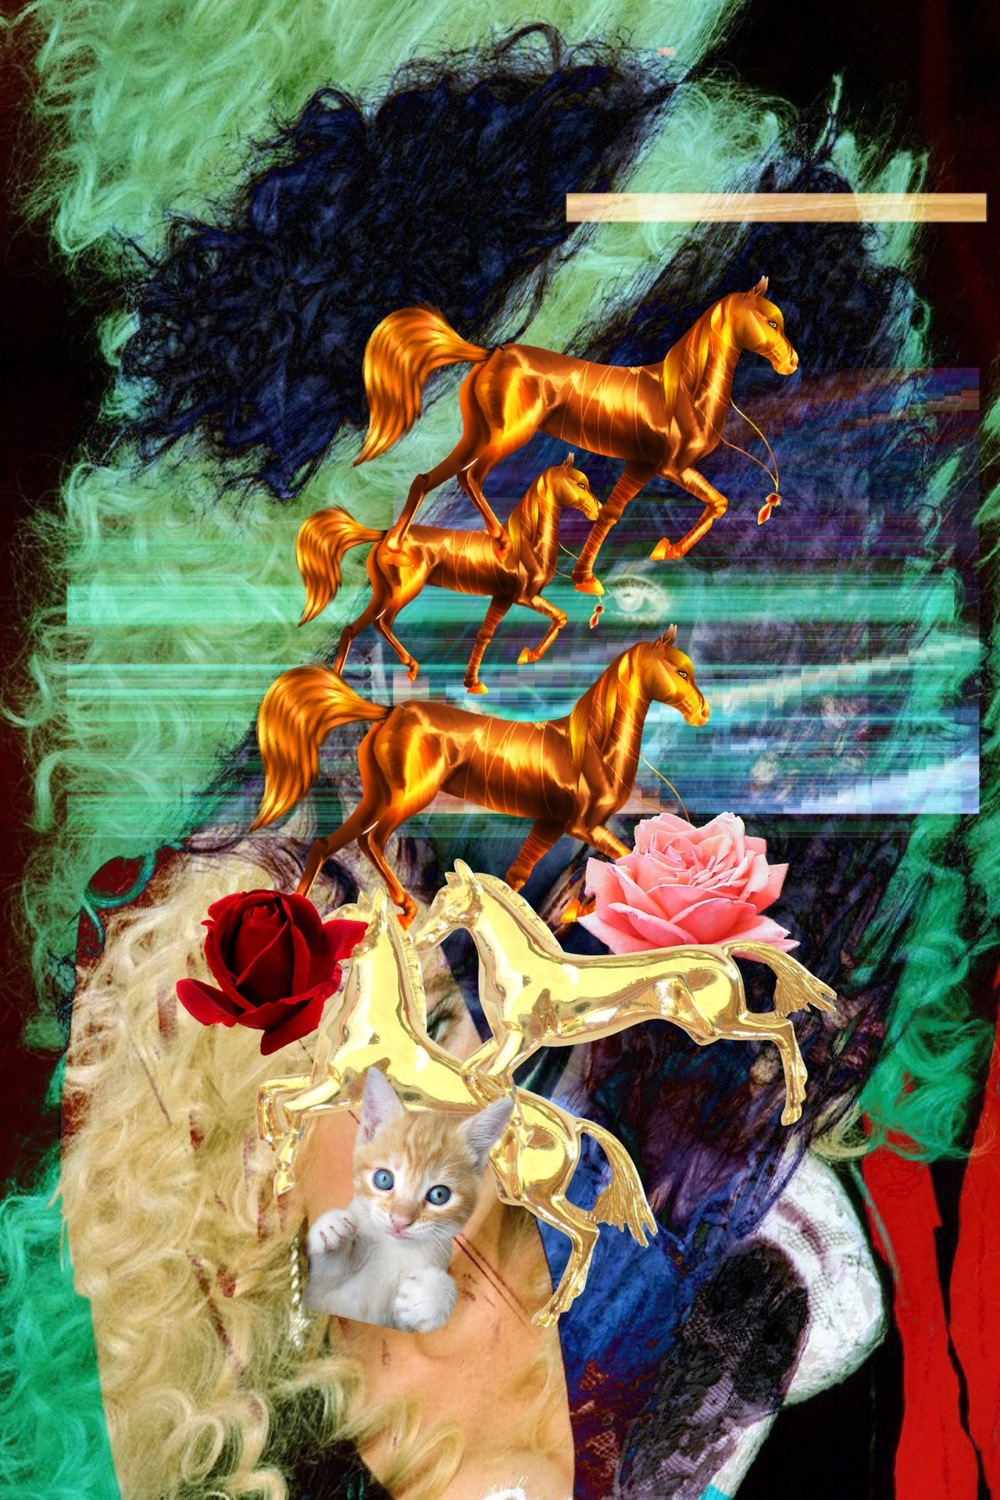 Golden Horse , 2016, Digital collage, 1440 x 2160 pixels